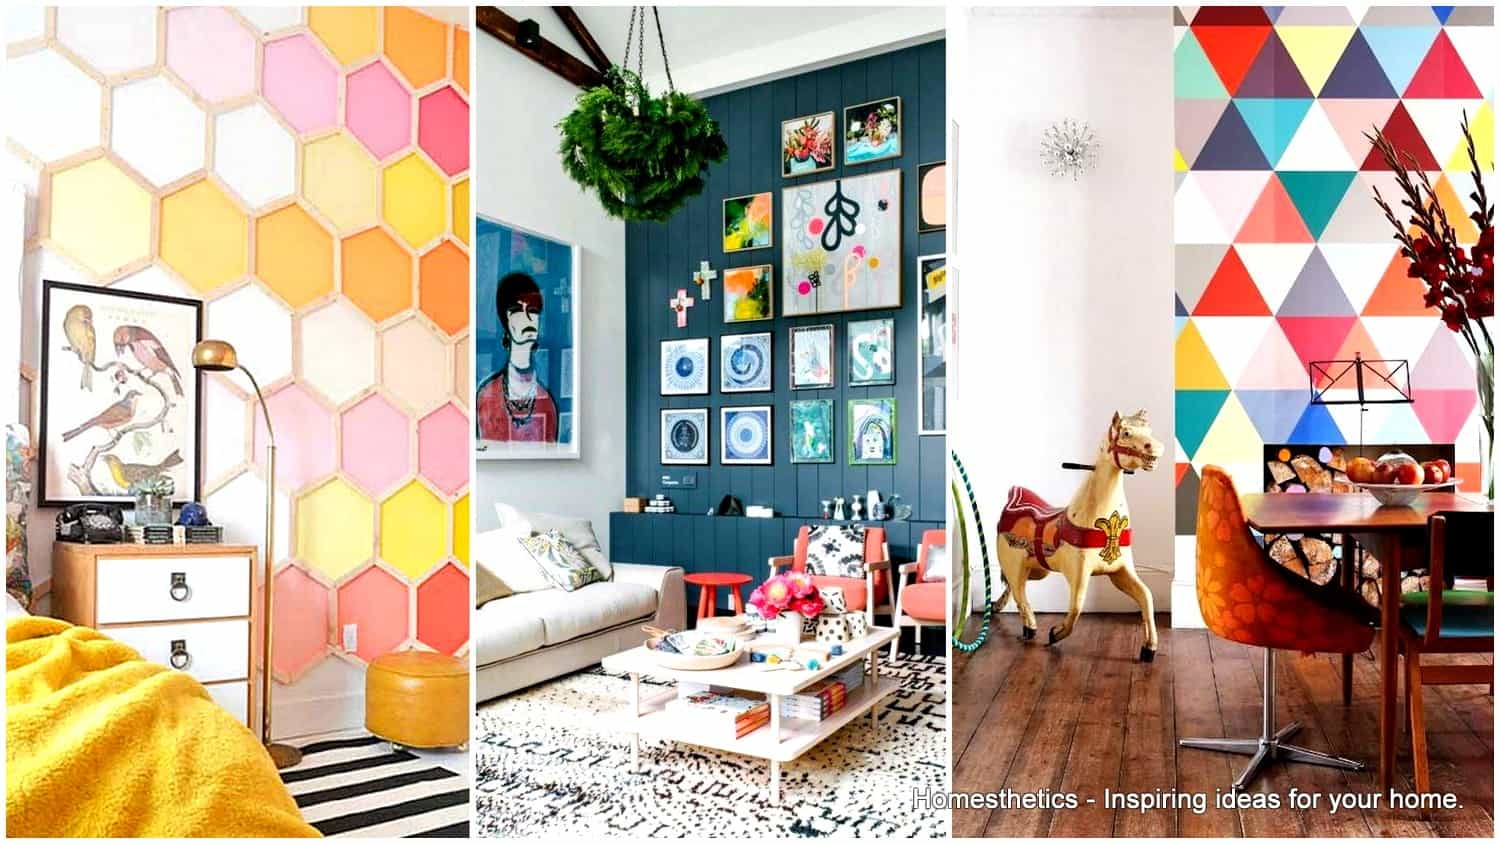 20 Inspirational Statement Walls Ideas That Will Spice Up Your Interior